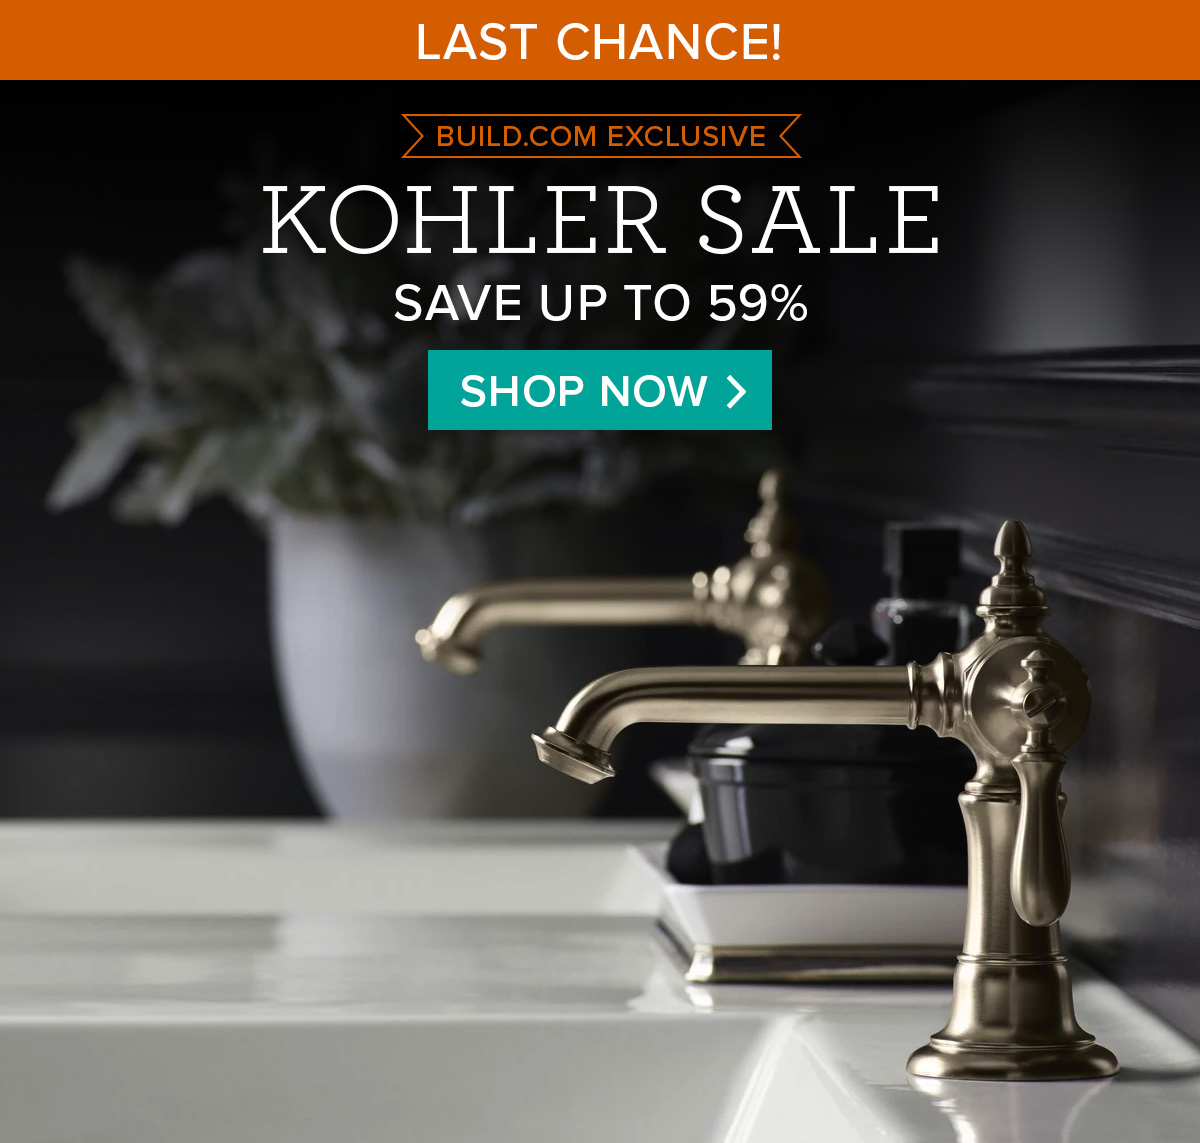 Build.com: Special savings on Kohler. Only at Build.com | Milled